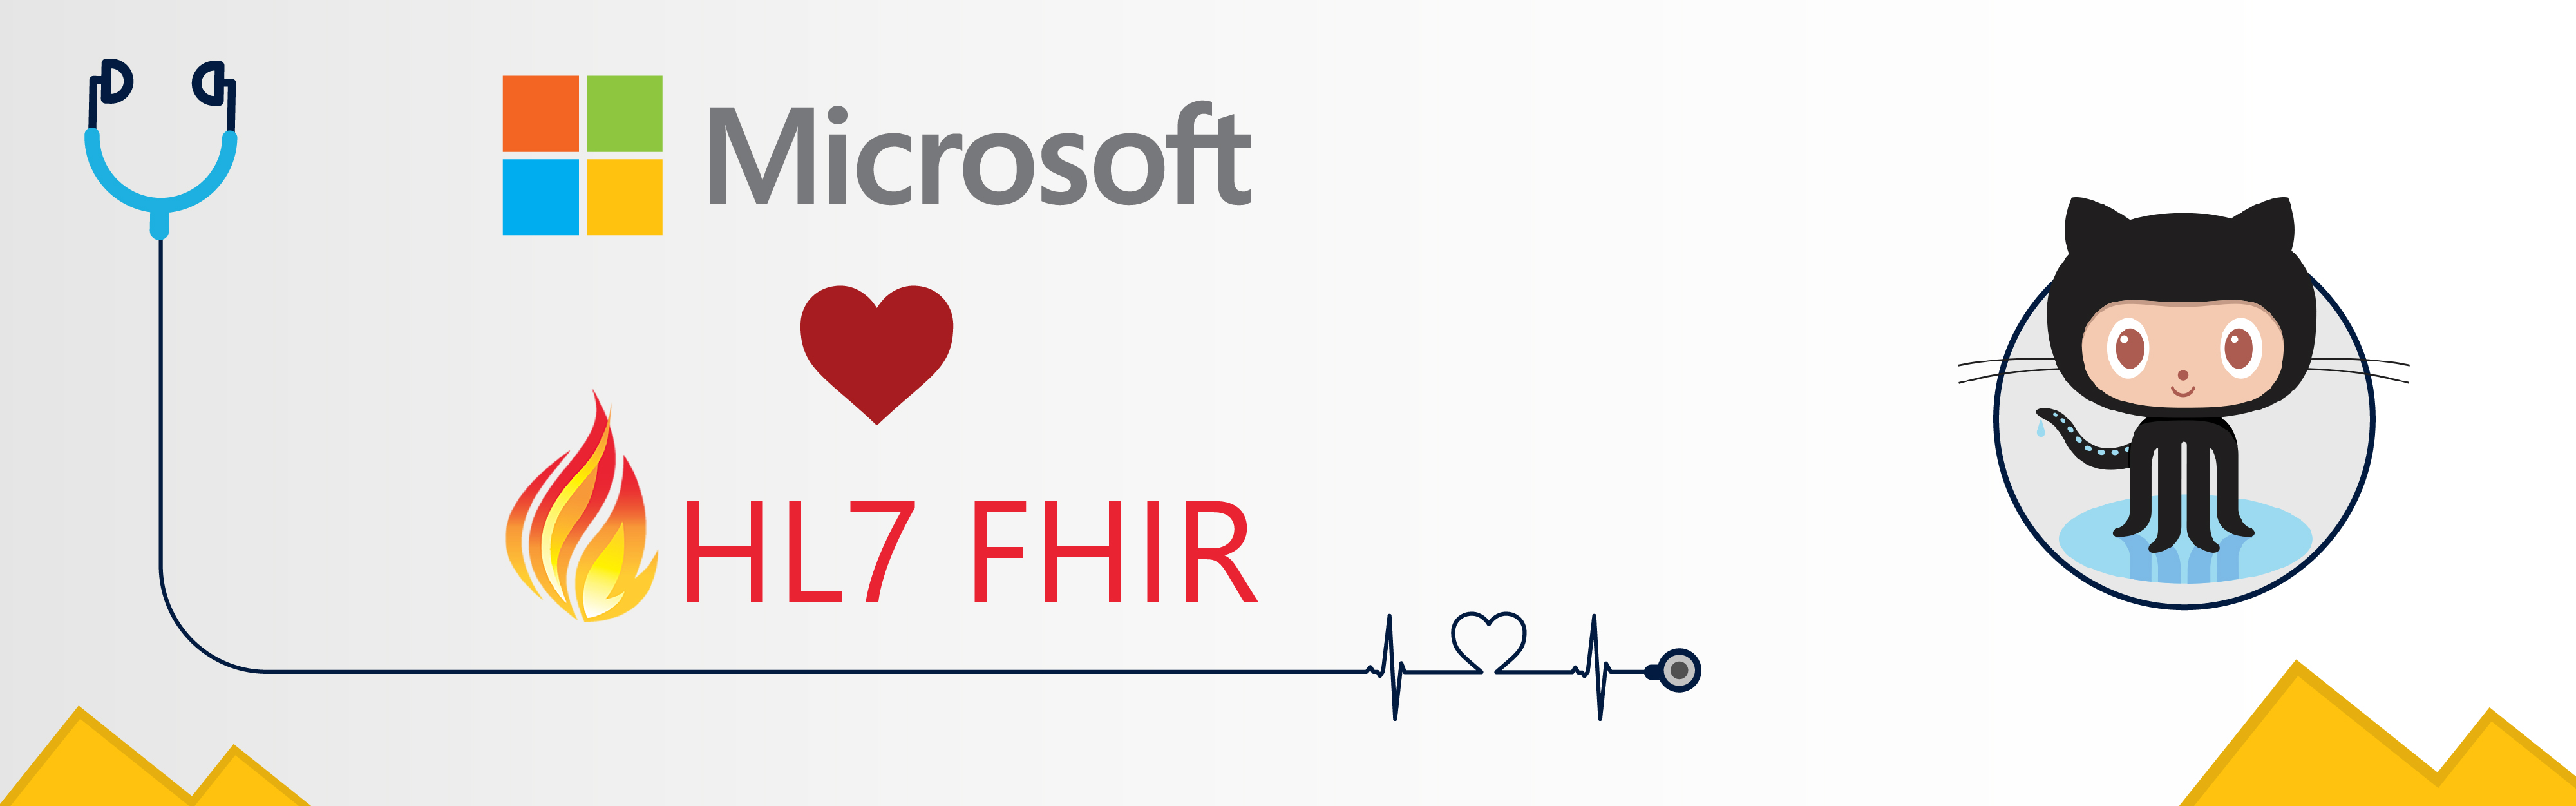 FHIR Server for Azure: An open source project for cloud-based health